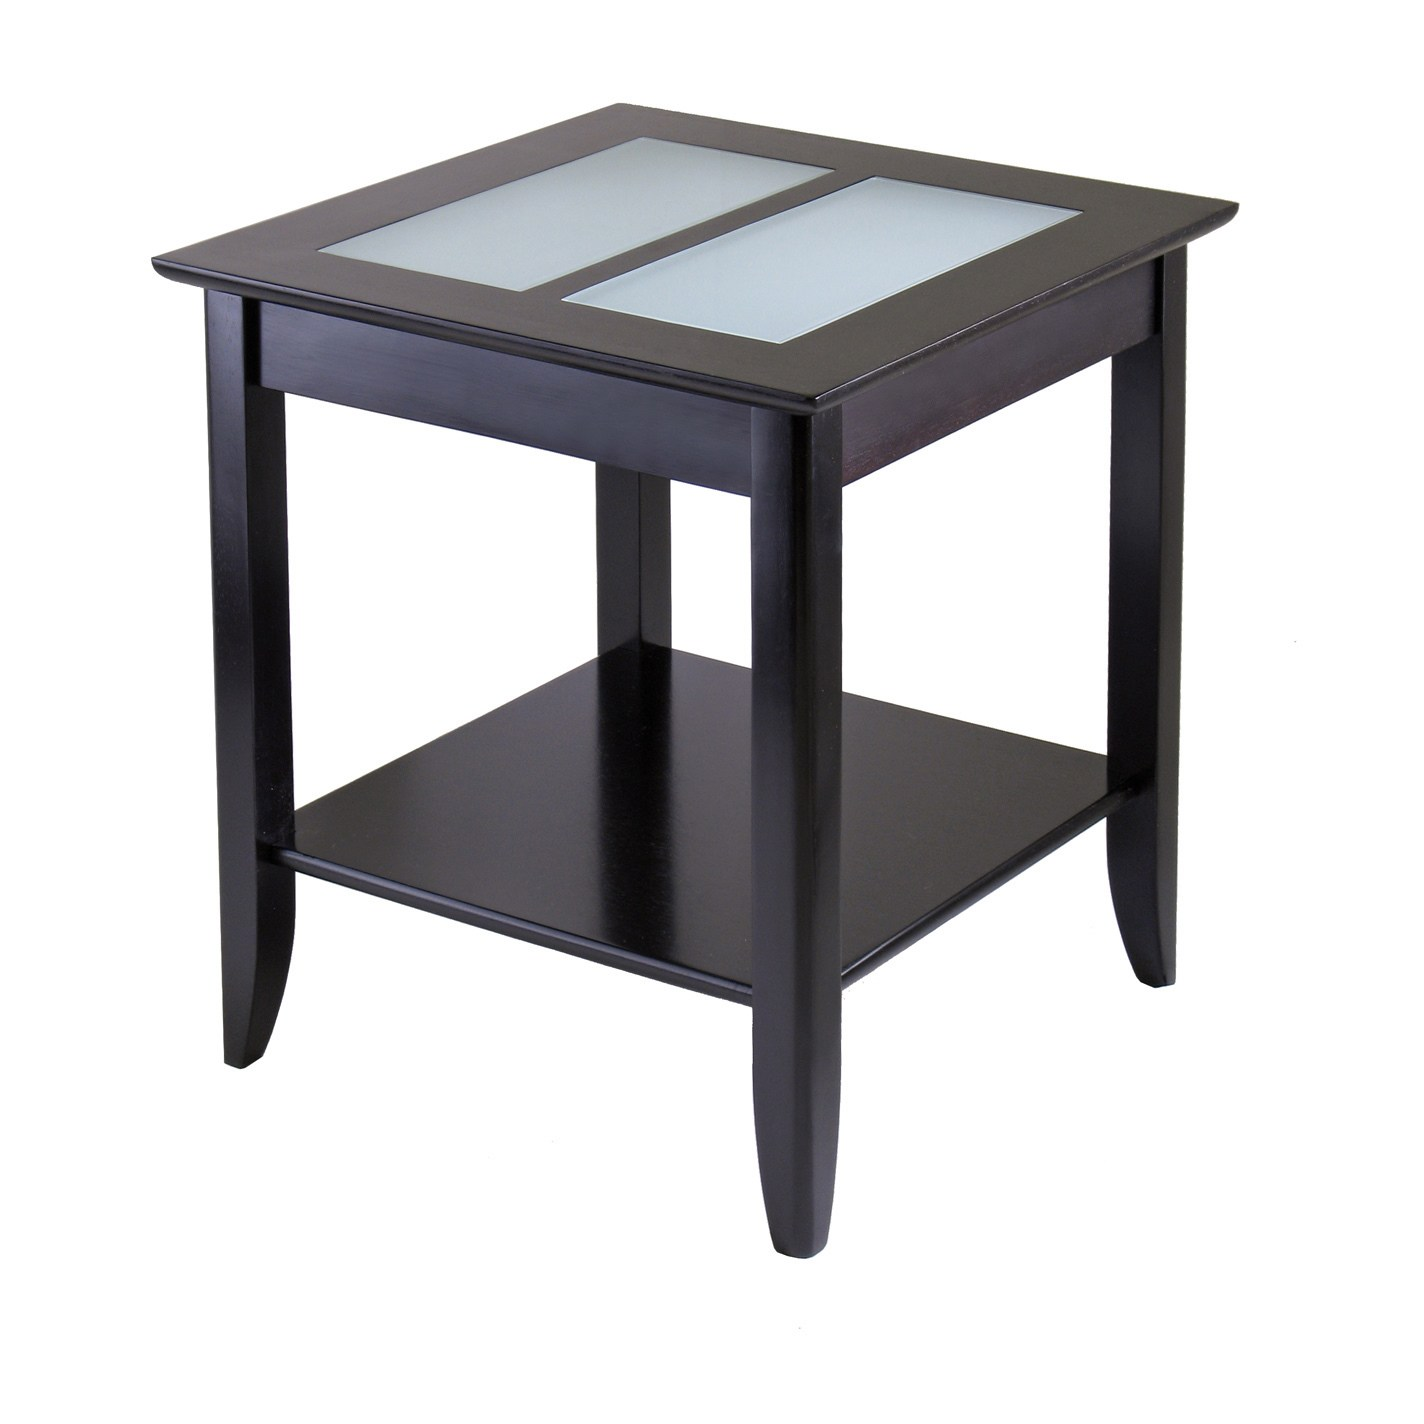 winsome syrah home living room espresso wood end table with frosted glass beechwood accent free shipping today ikea shelves pottery barn black coffee round inch nightstand bedside